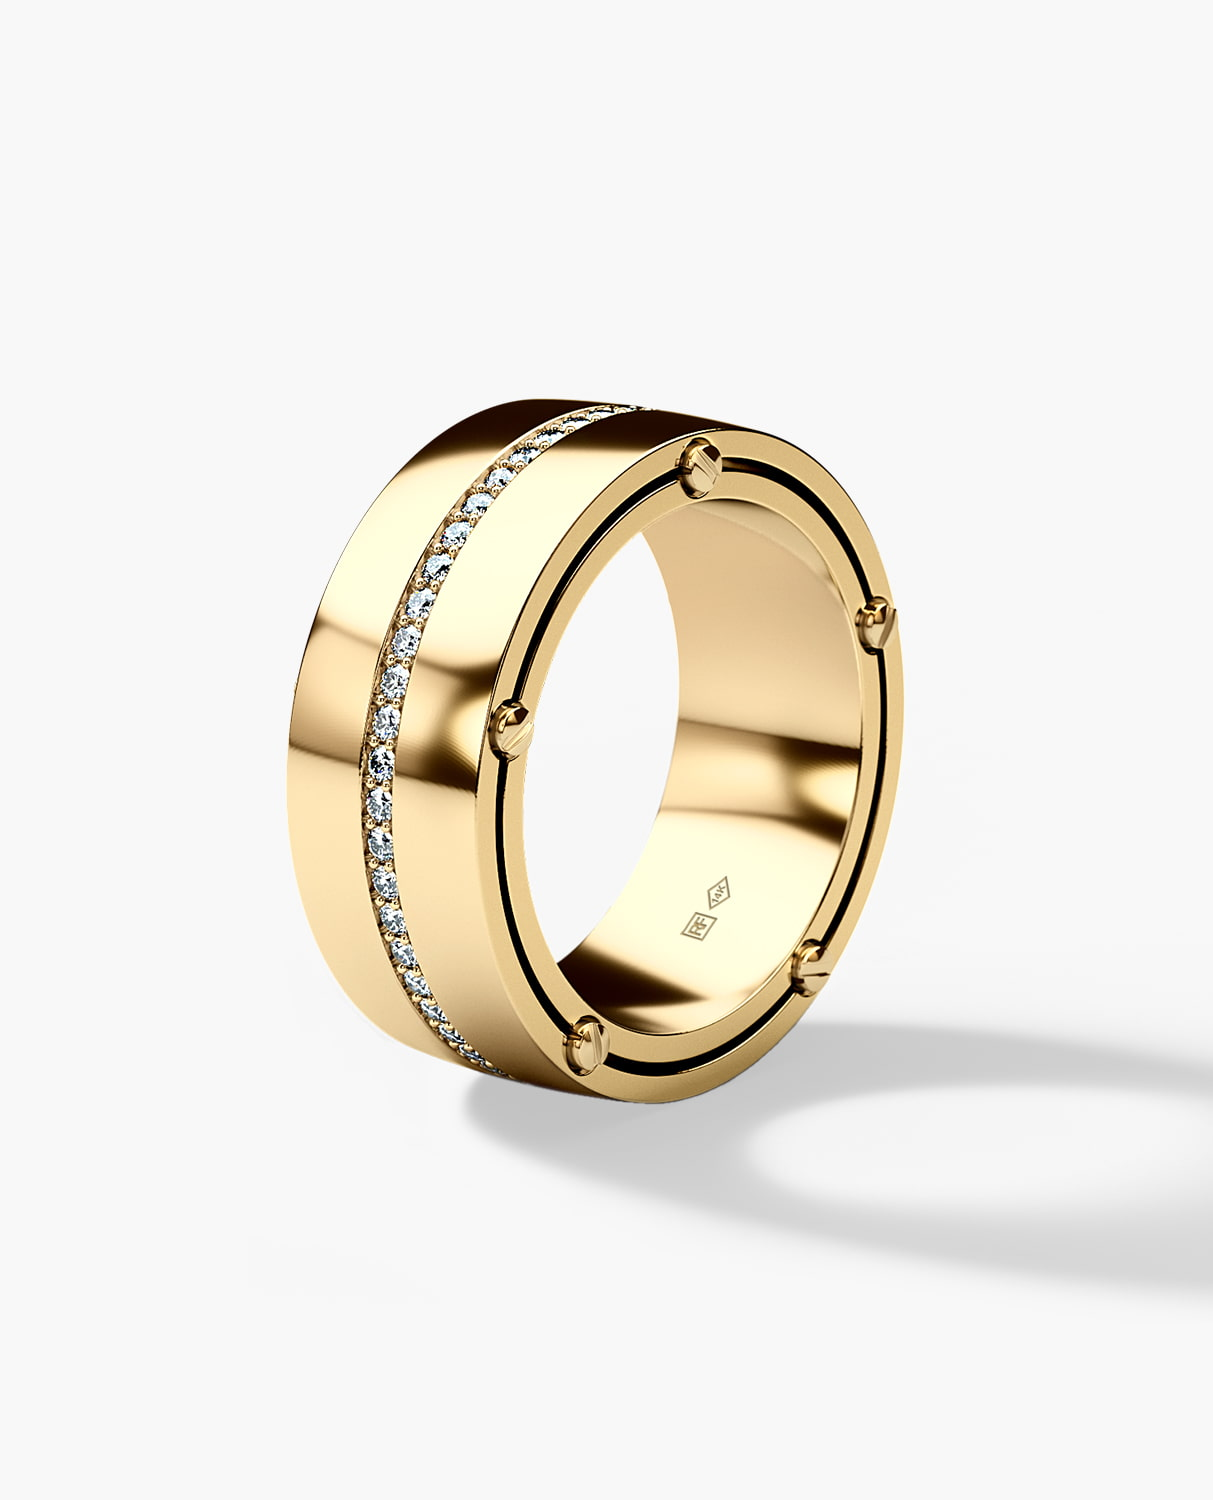 FRANKLIN Comfort Fit Mens Gold Wedding Band with 0.50ct Diamonds - Wide Version